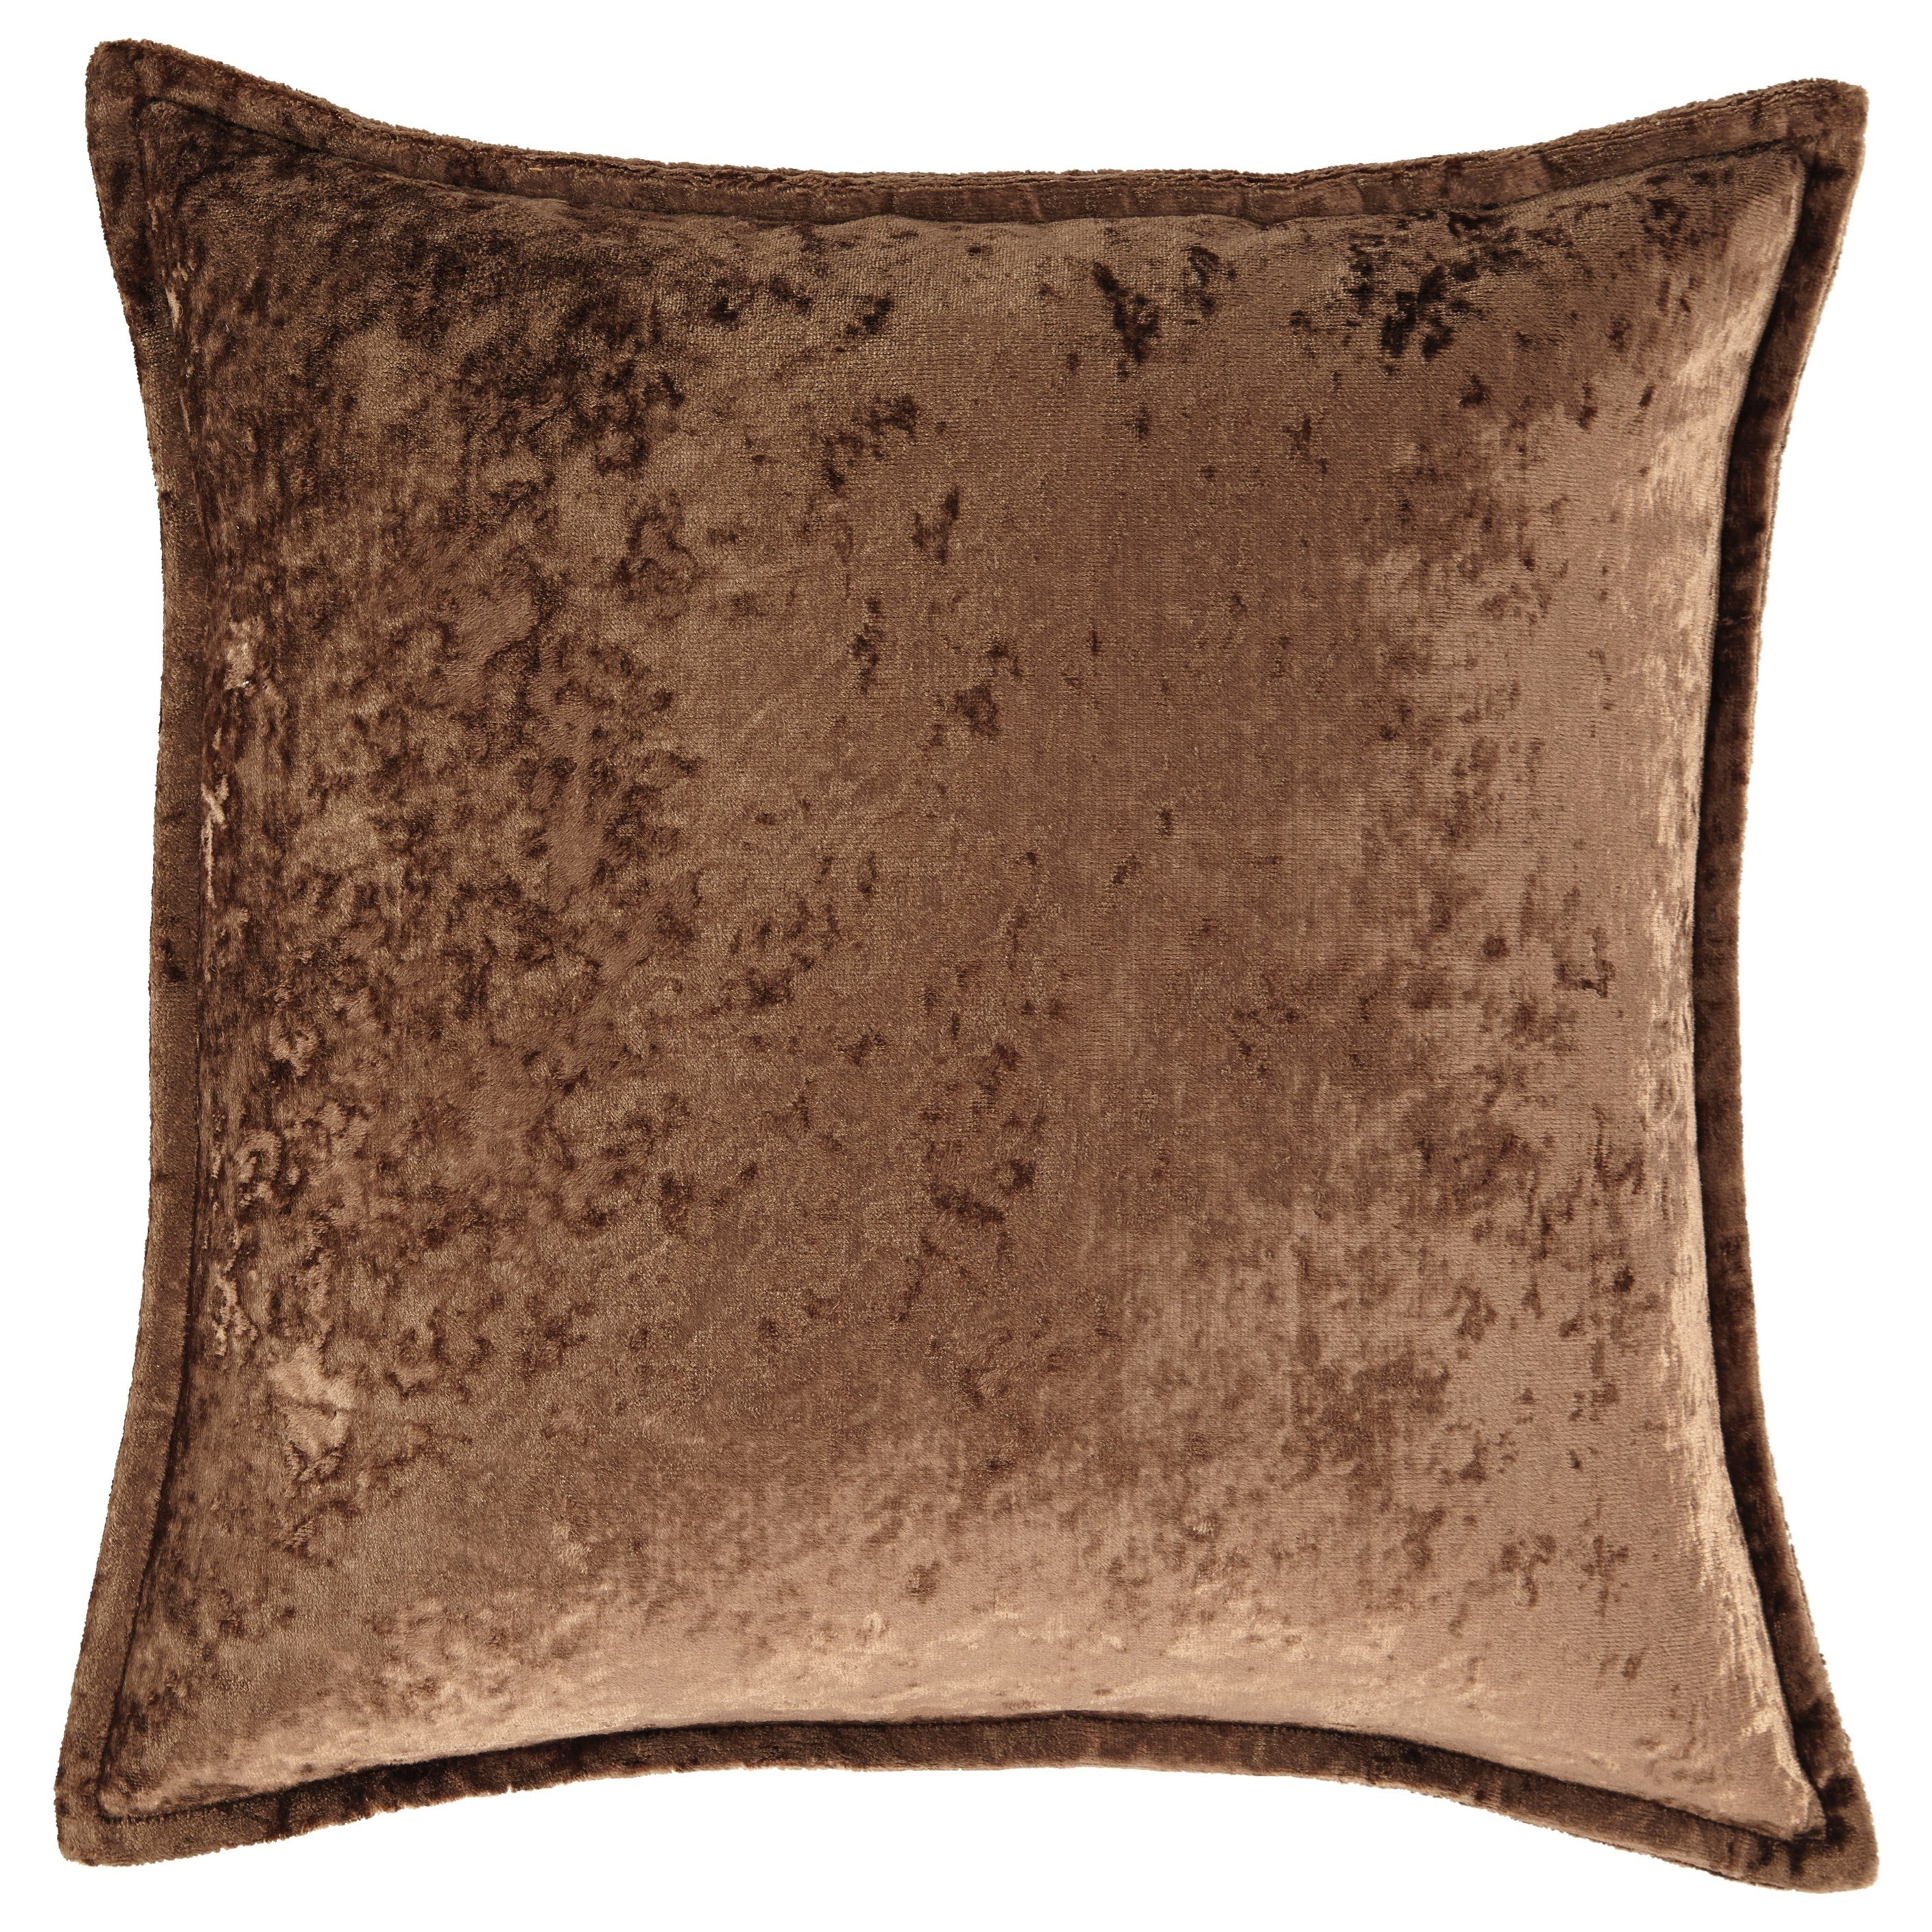 Signature Design by Ashley Pillows Melaney Toffee Pillow - Item Number: A1000732P